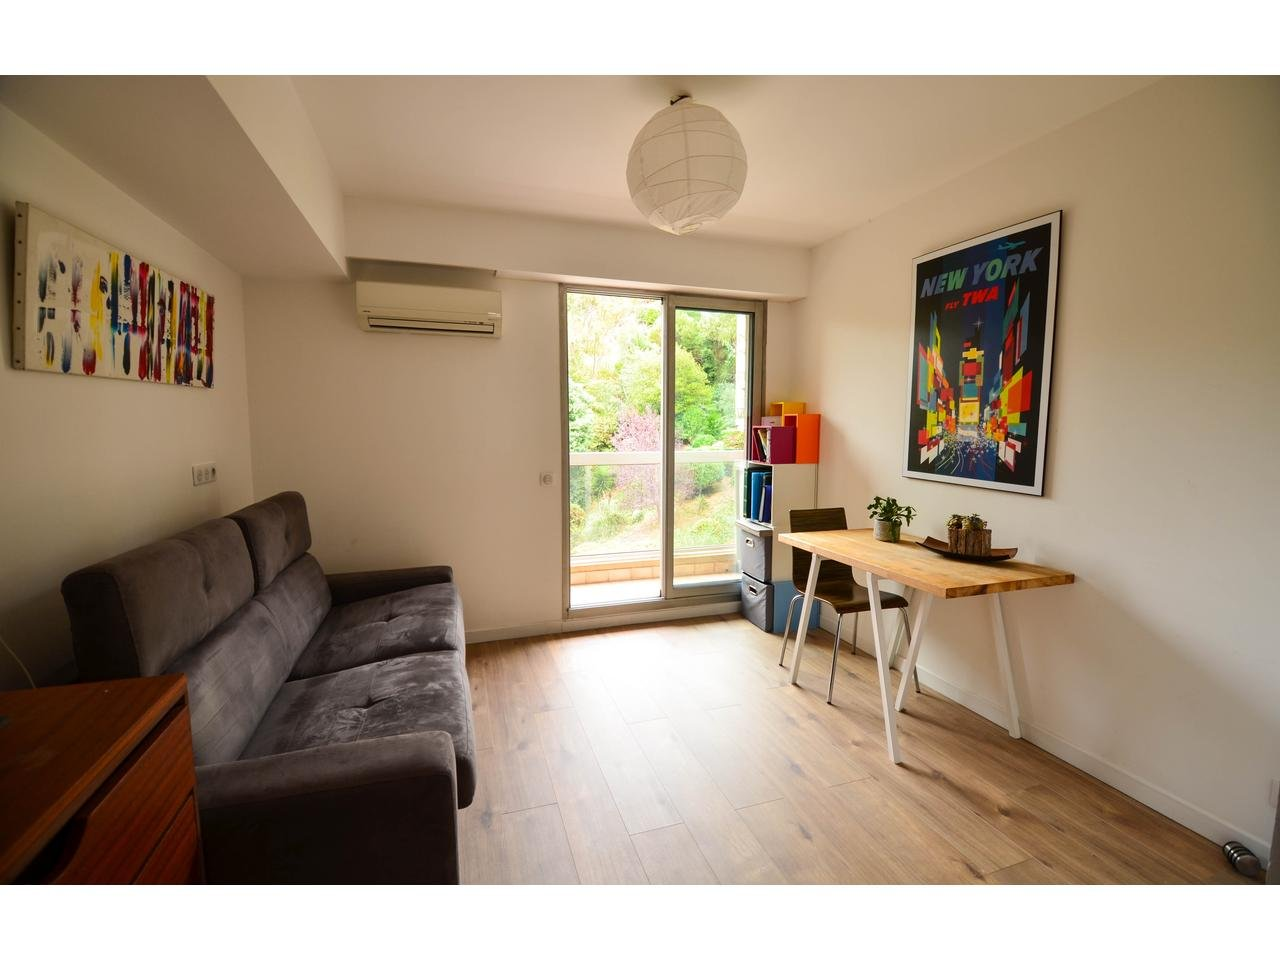 Appartement  3 Rooms 81m2  for sale   545000 €